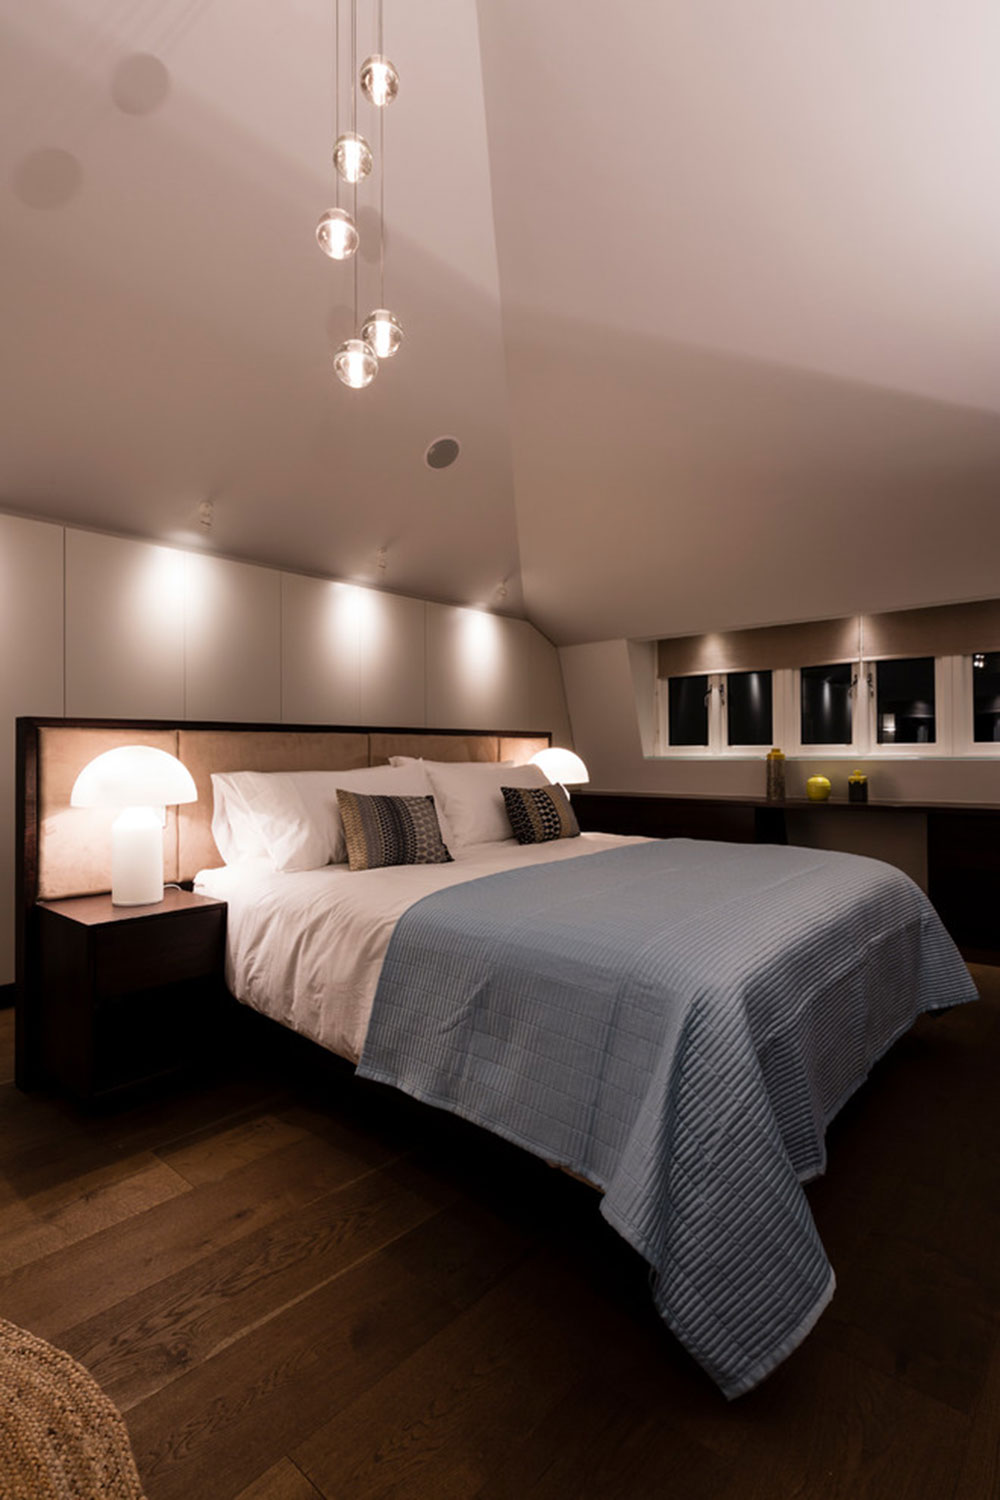 Newlyweds-Bedroom-Design-Ideas-to-help-the-couple-7 newlyweds-bedroom-design-ideas-to-help the couple